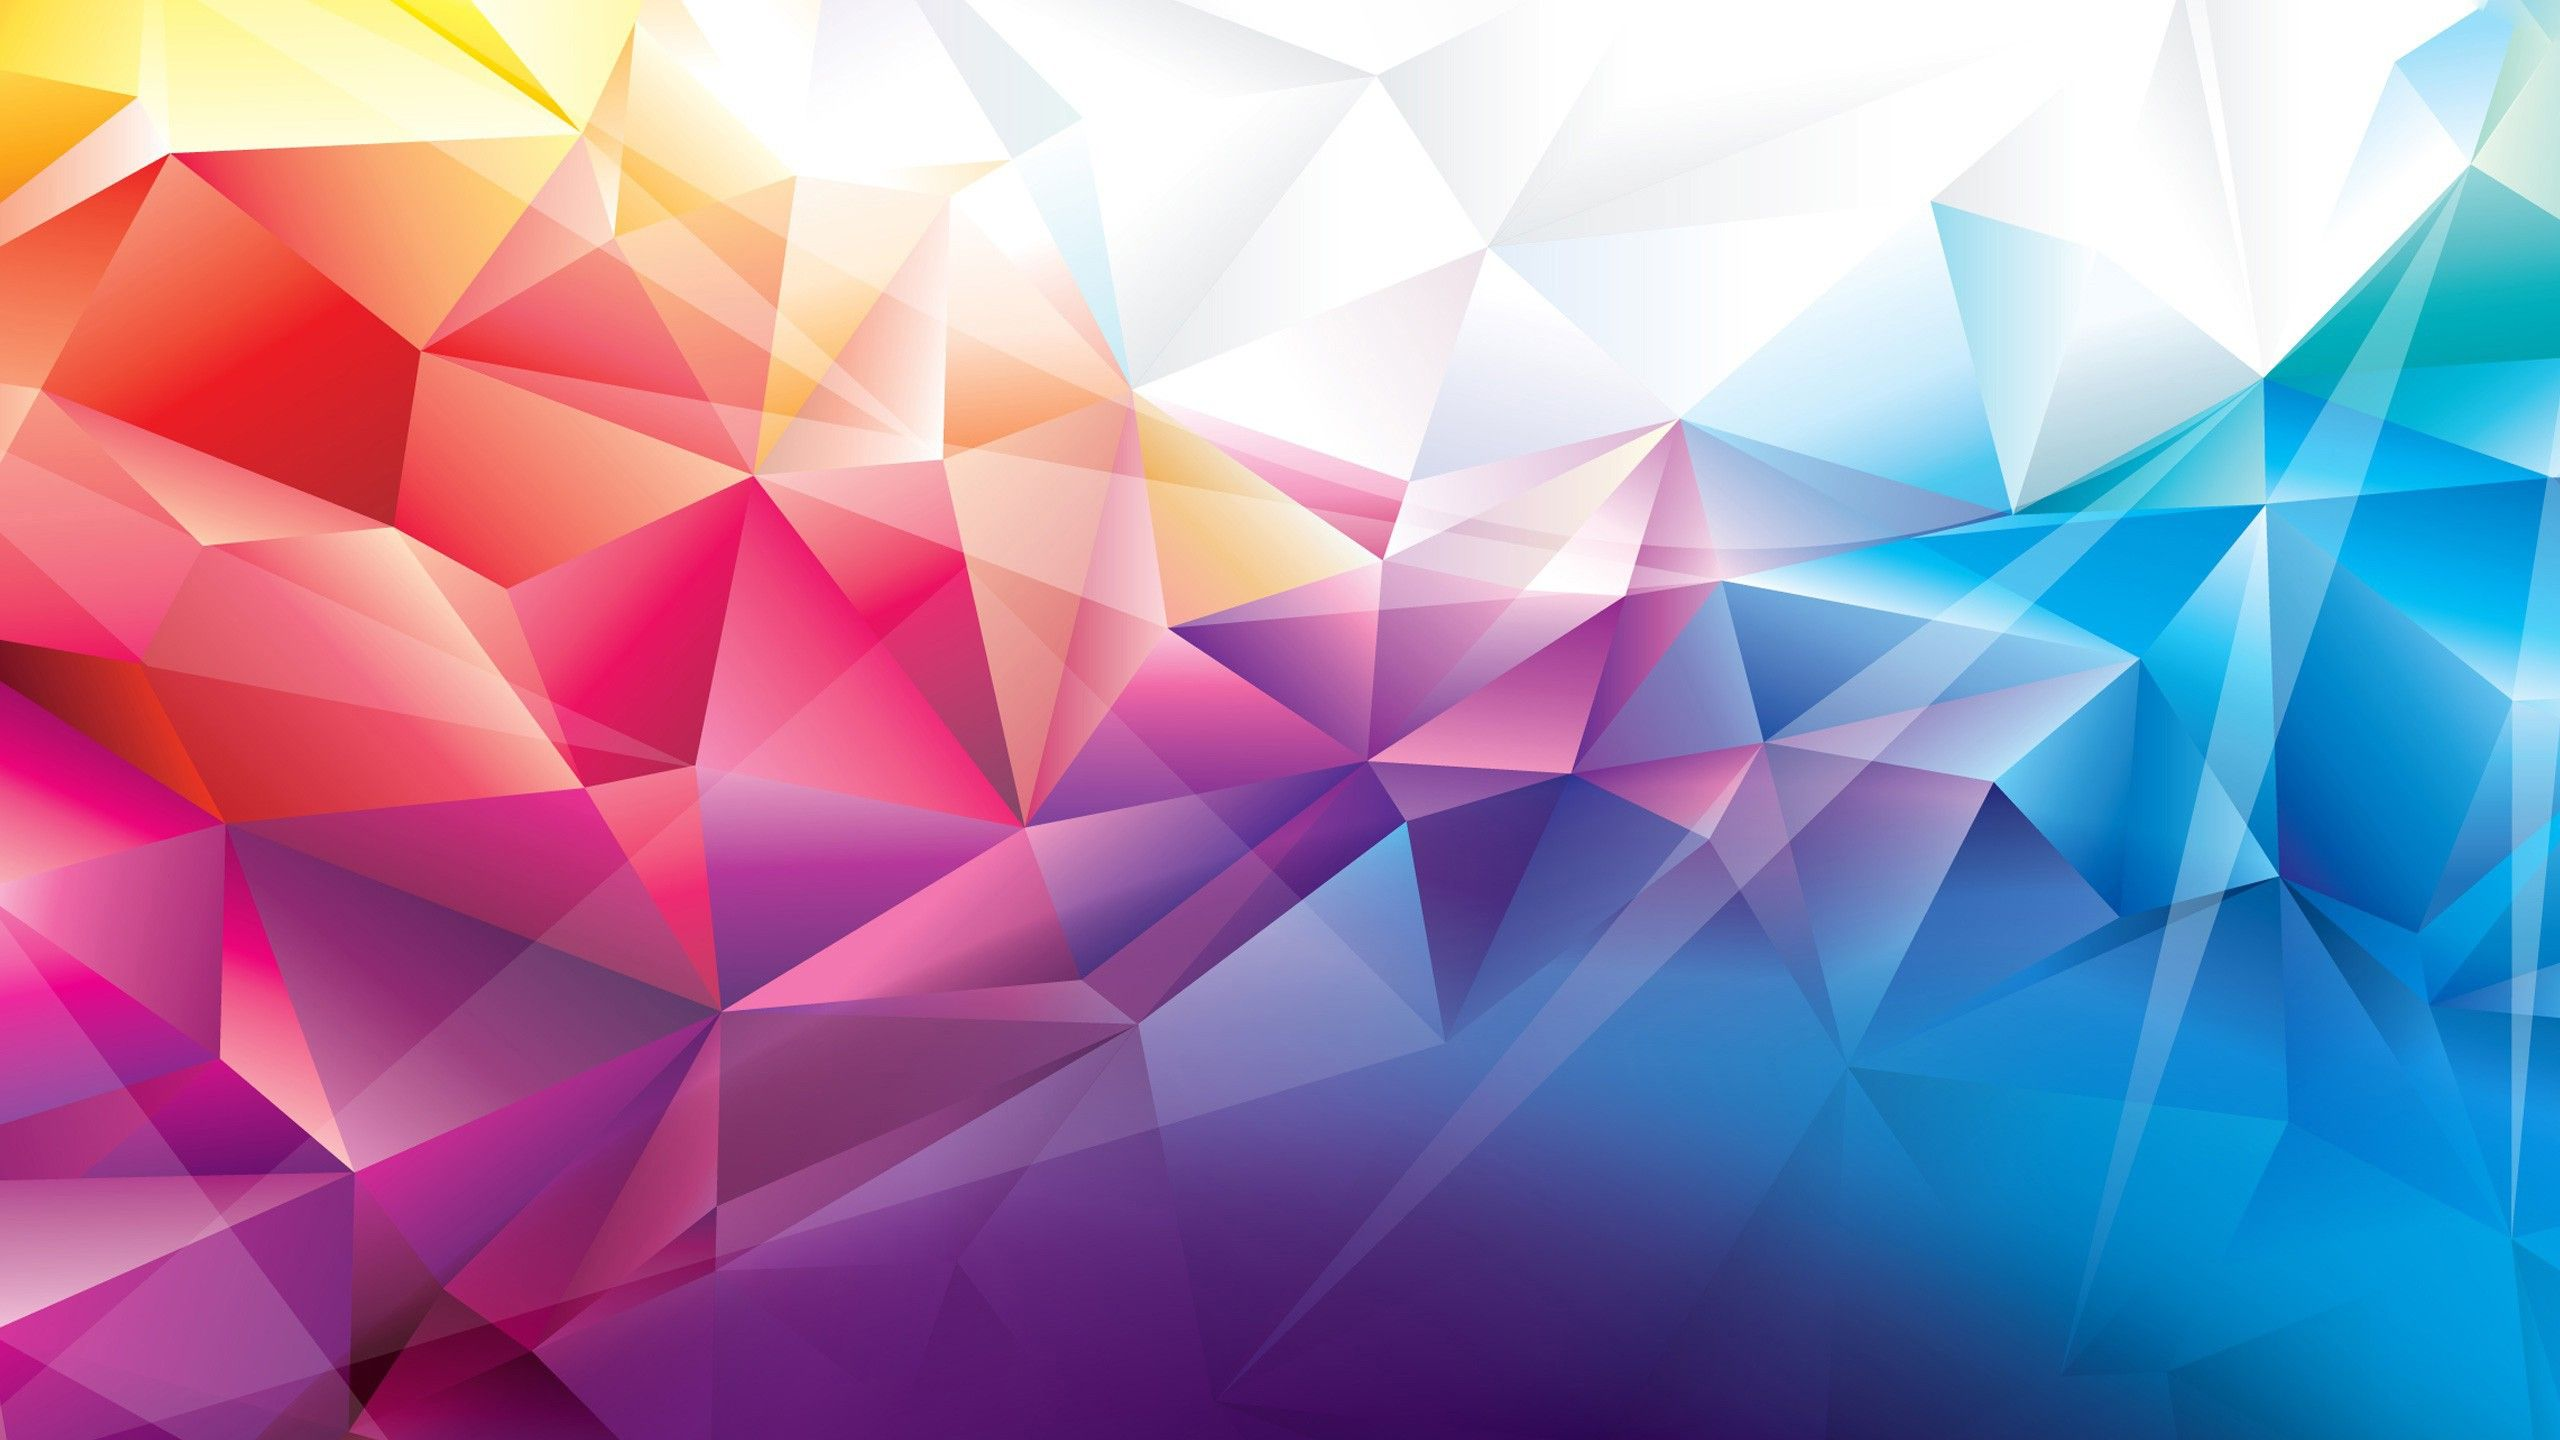 Colorful Polygons Wallpapers Hd Wallpapers Dengan Gambar